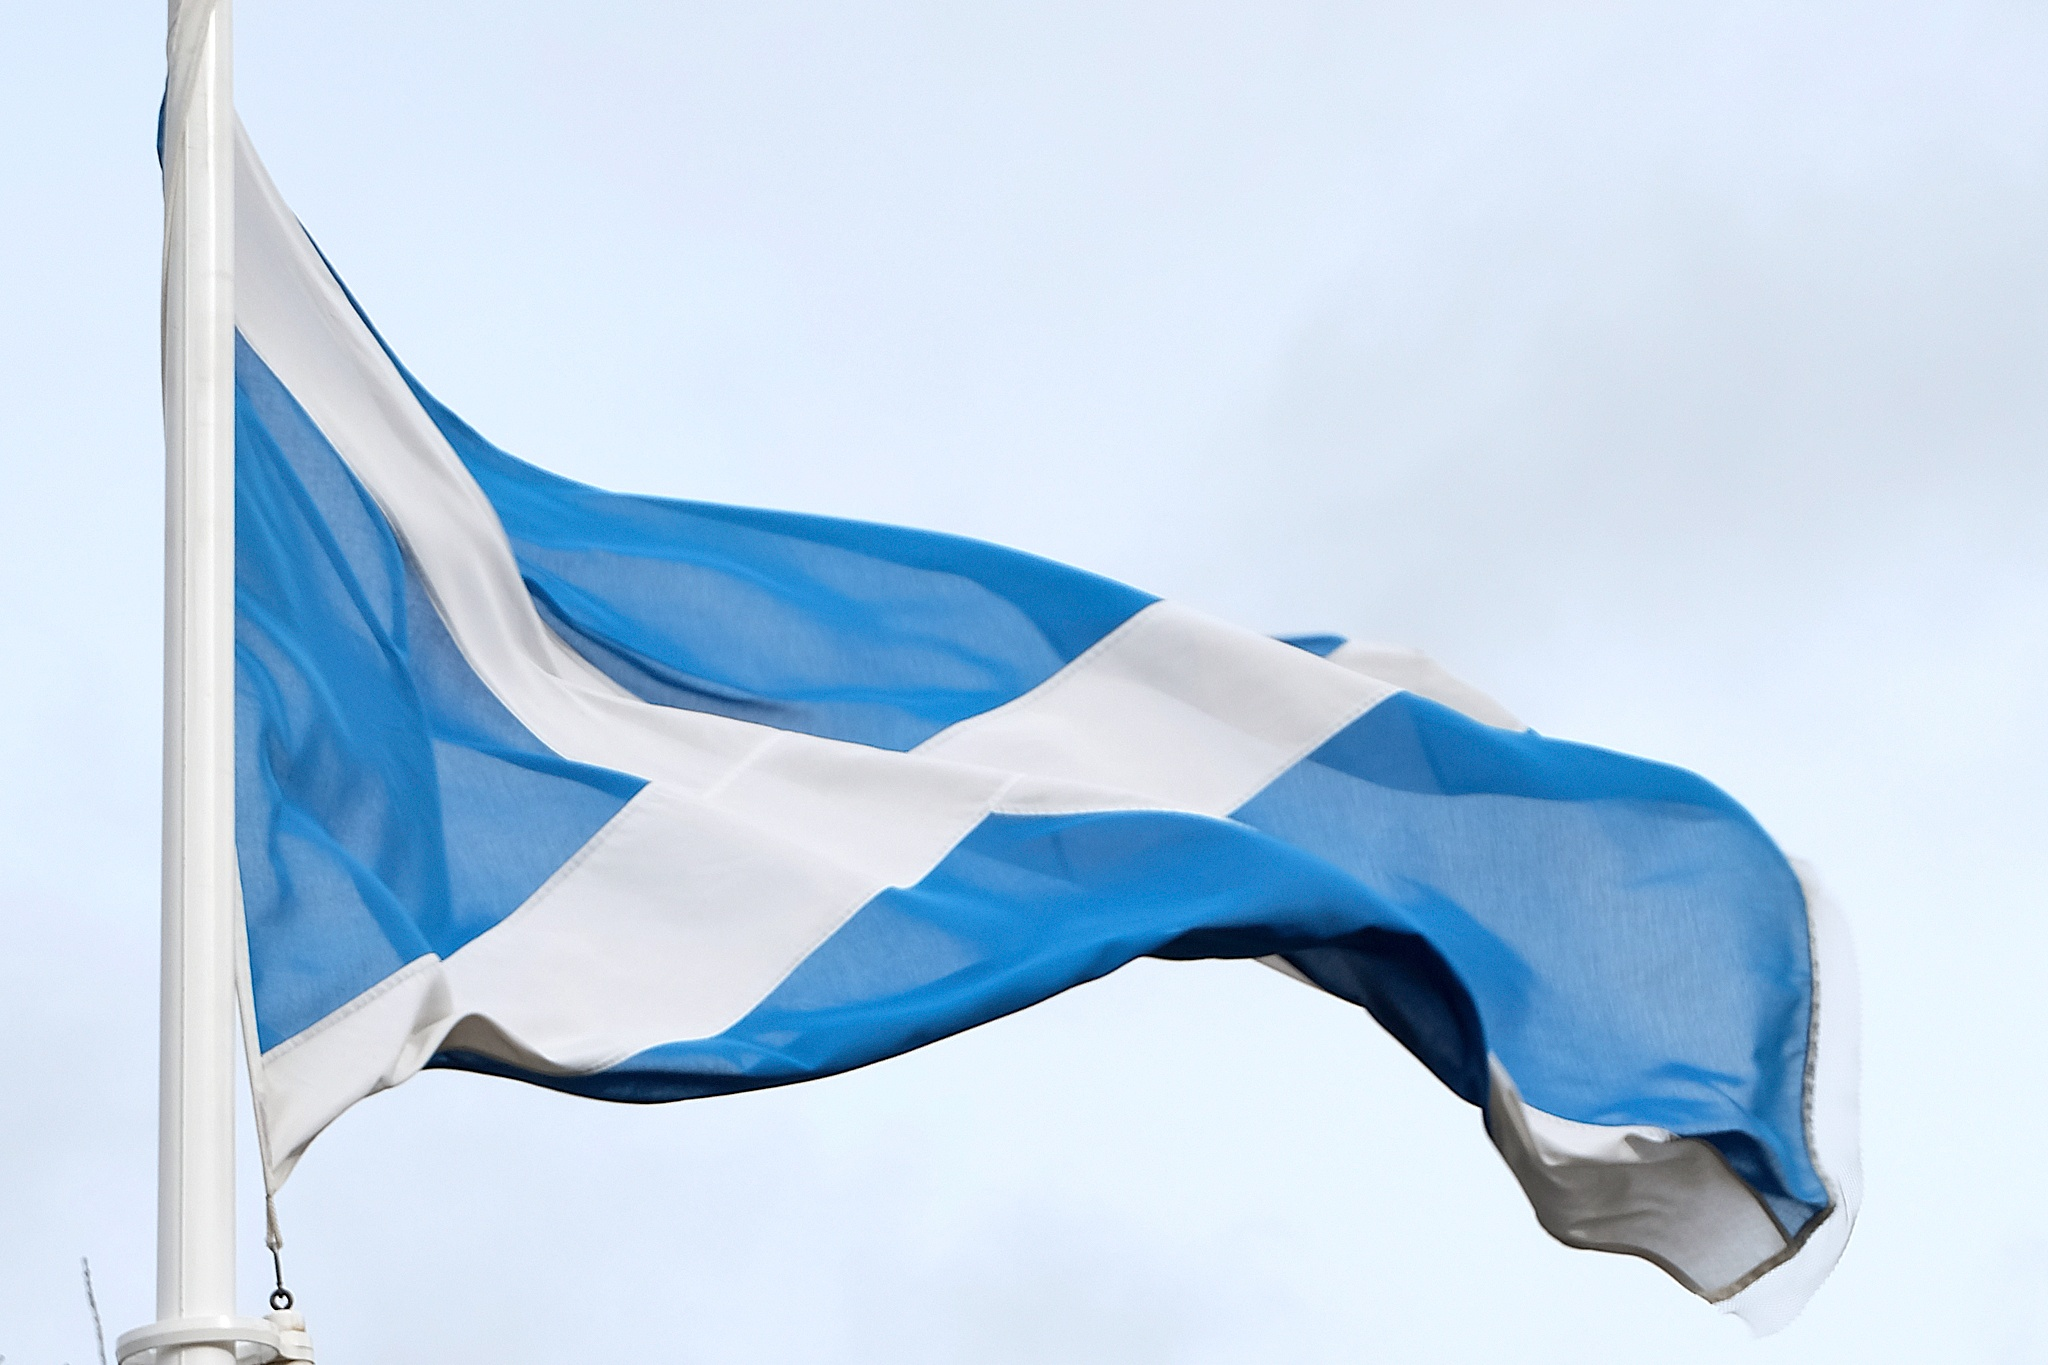 The Saltire by patyuile